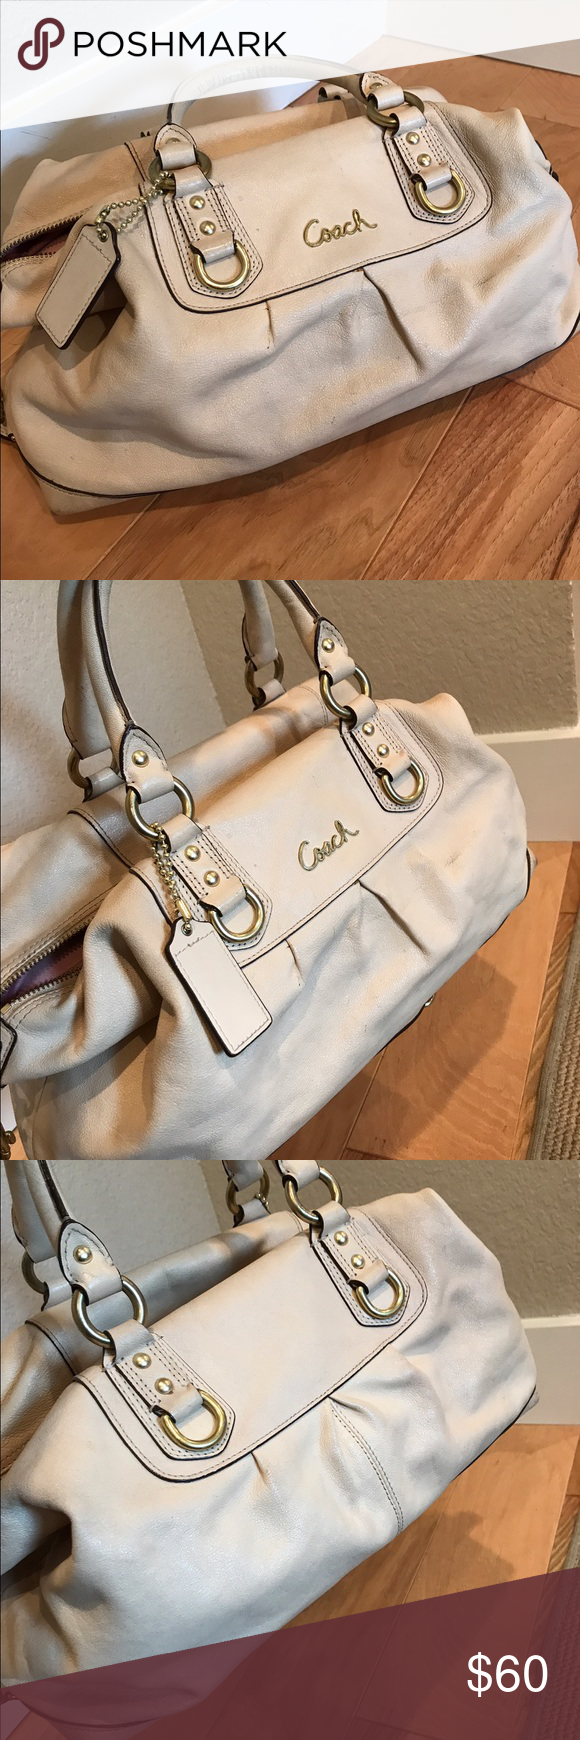 Coach Purse Used Beige Leather Coach Purse with Gold accent and hardware. Normal wear and tear visible and has been kept in dust bag. Coach Bags Shoulder Bags